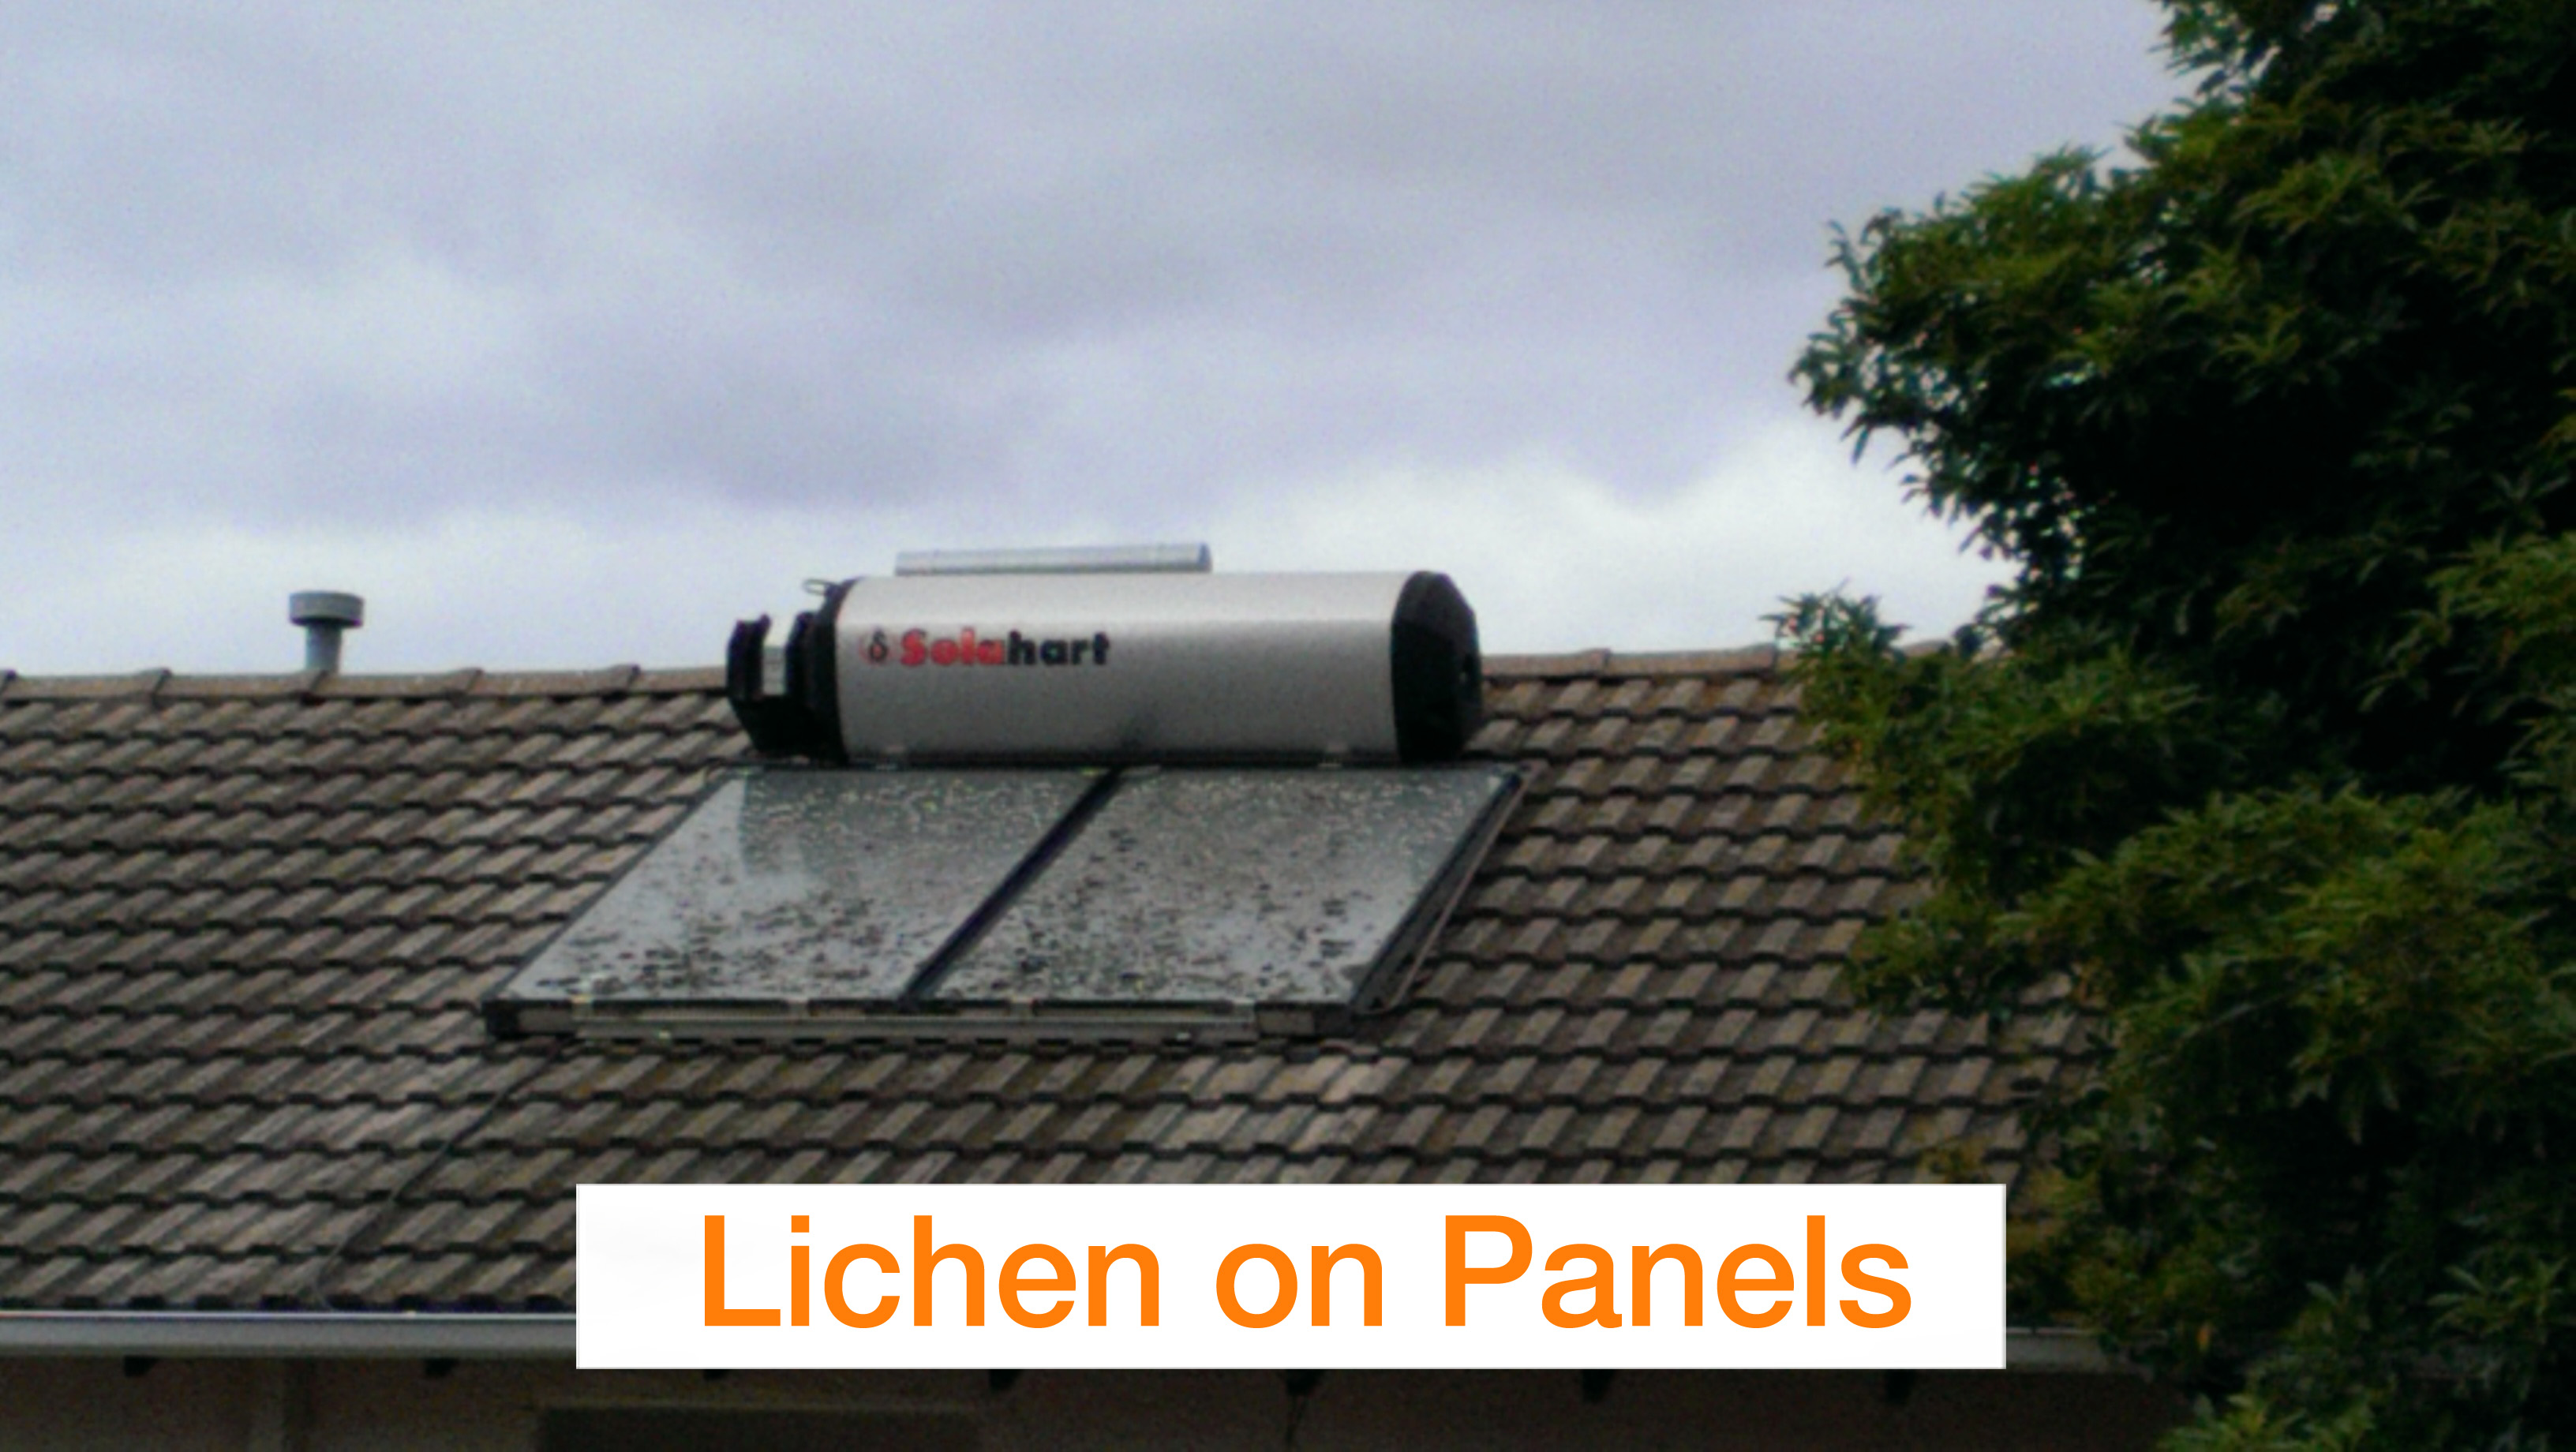 Lichen on Panels